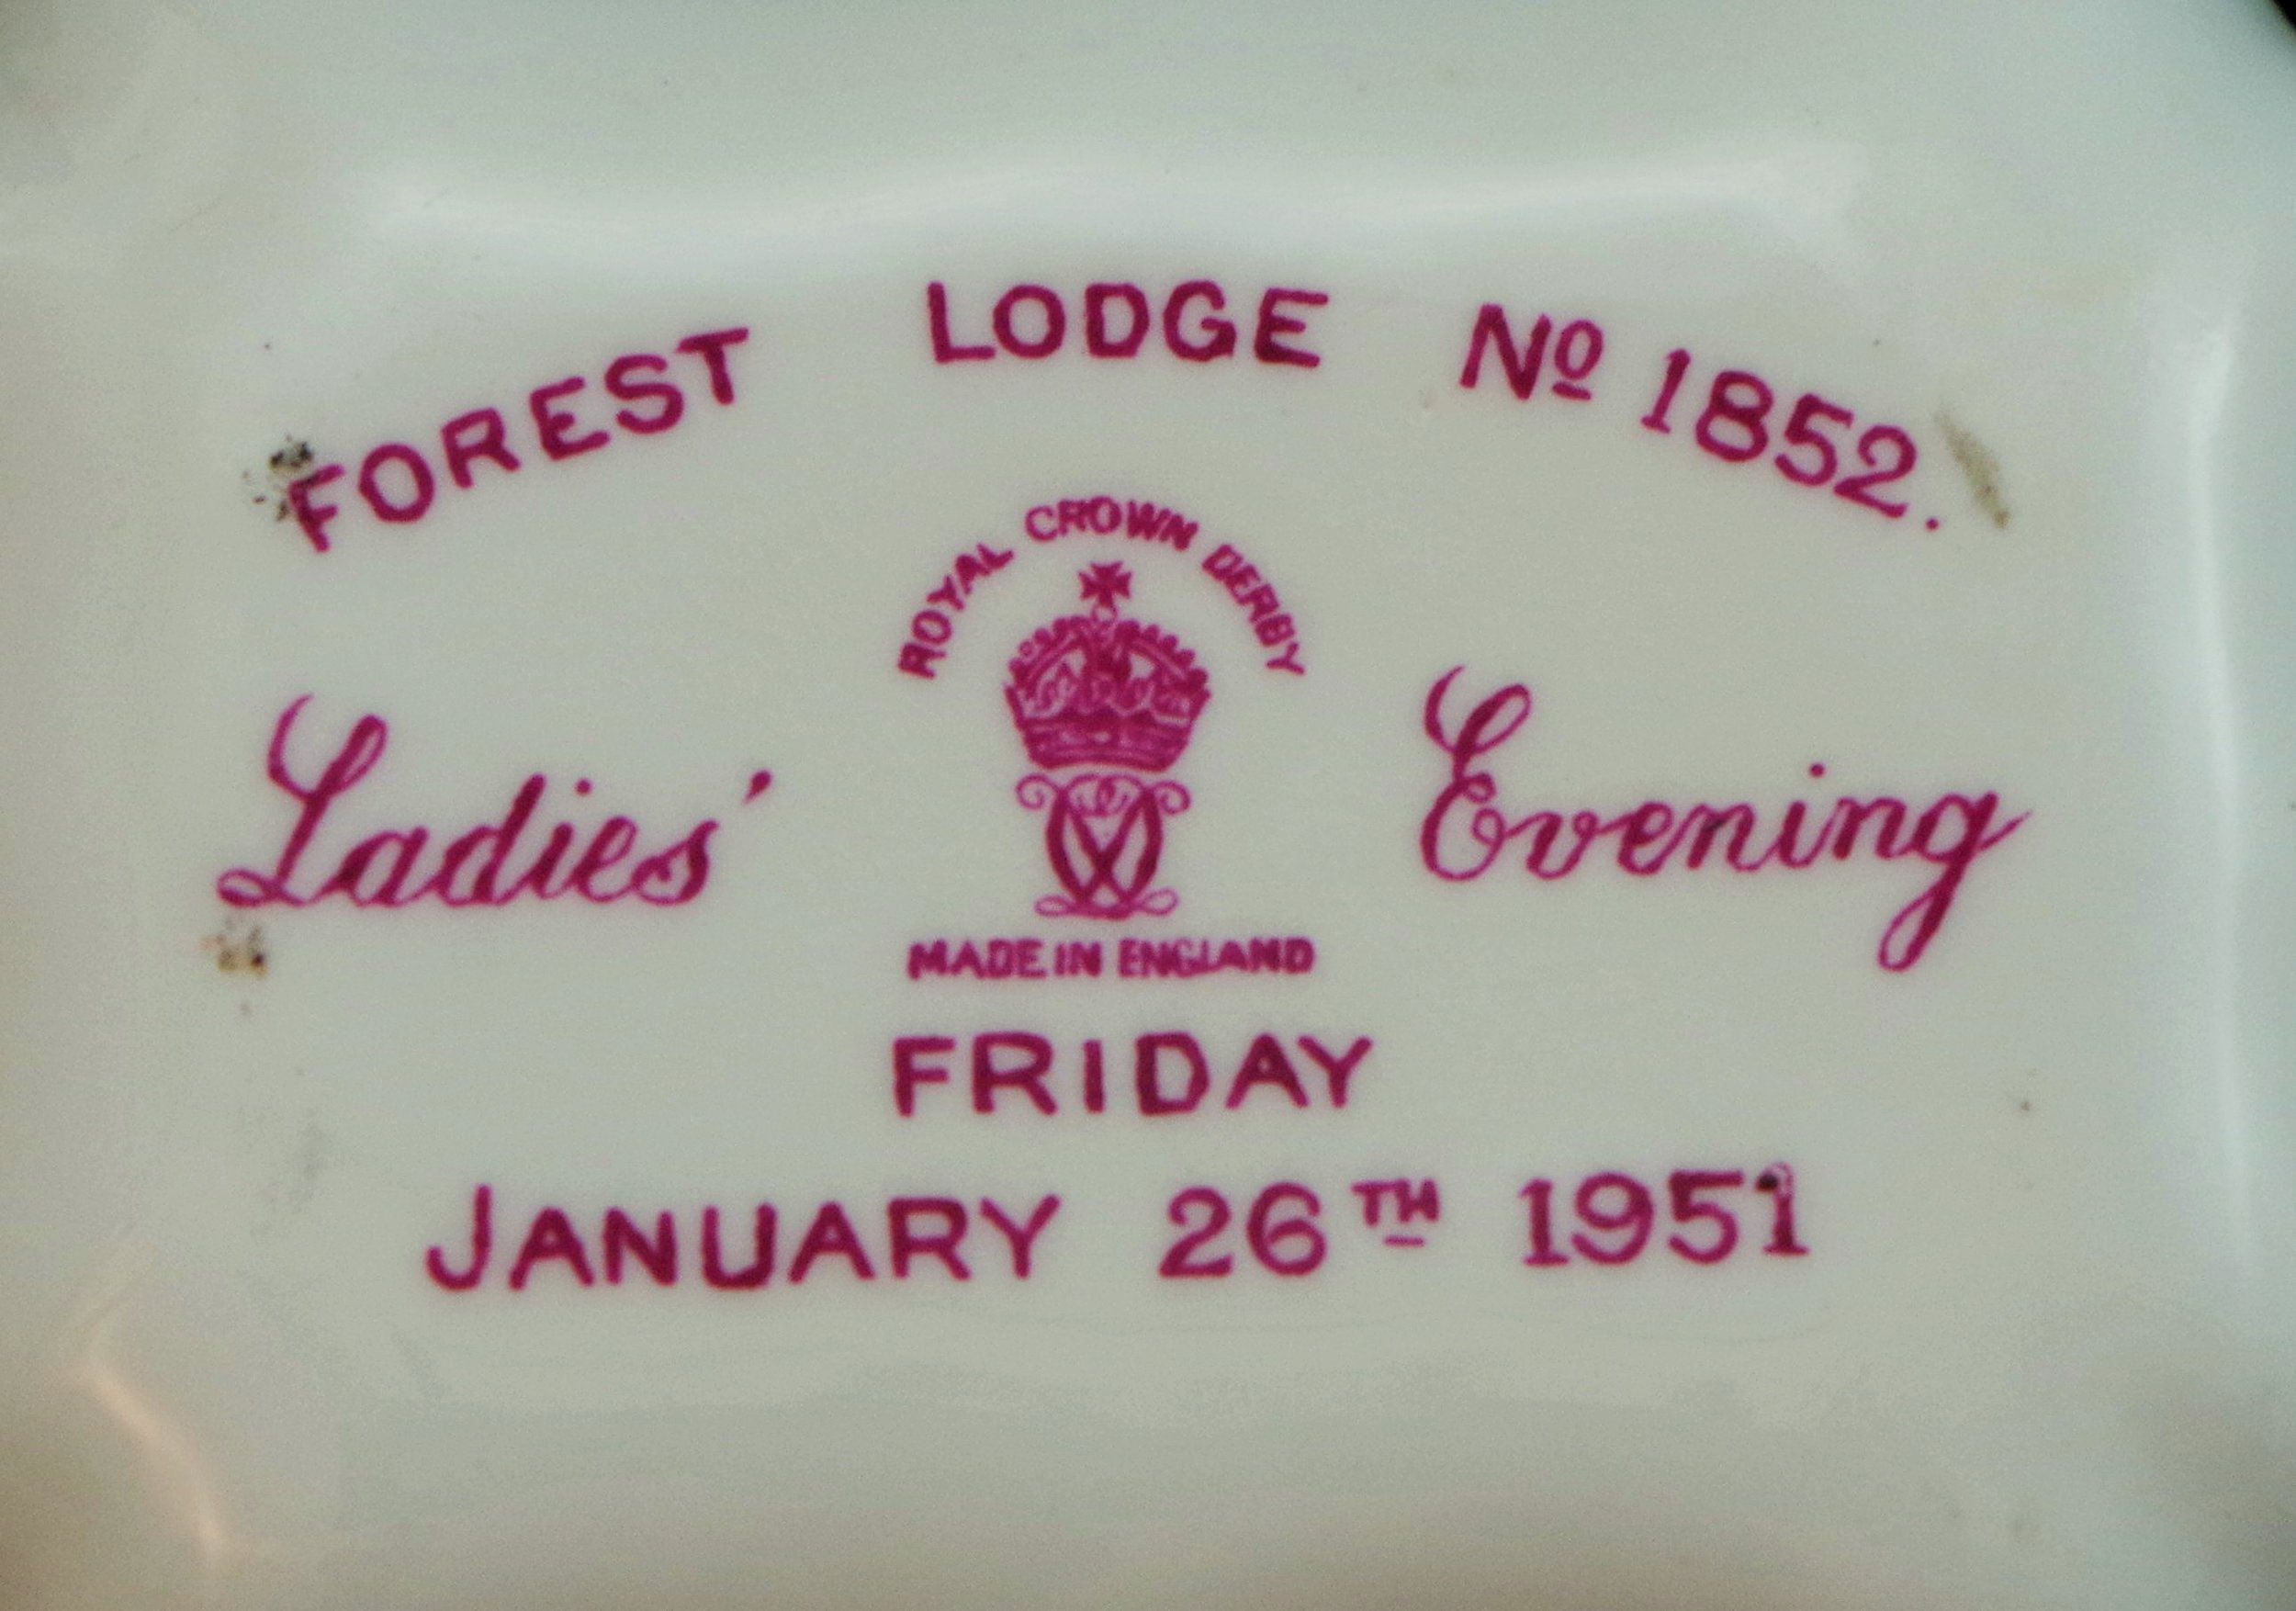 royal-crown-derby-1800-shape-tray-salmon-posie-forest-lodge-1852-ladies-evening-1951-mark